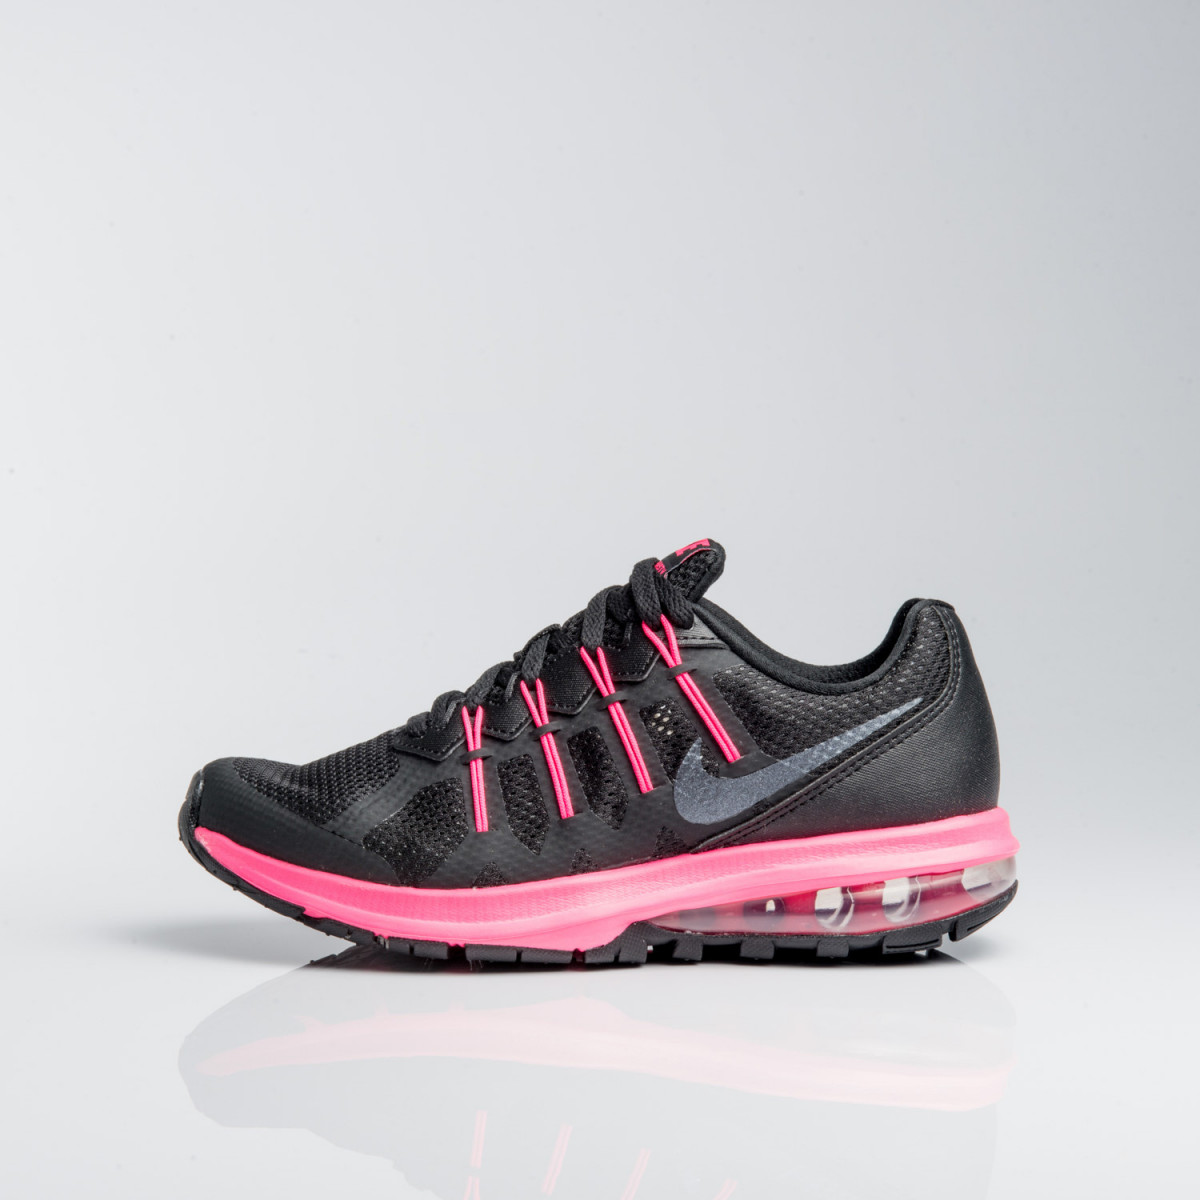 Zapatillas Nike Wmns Air Max Dynasty